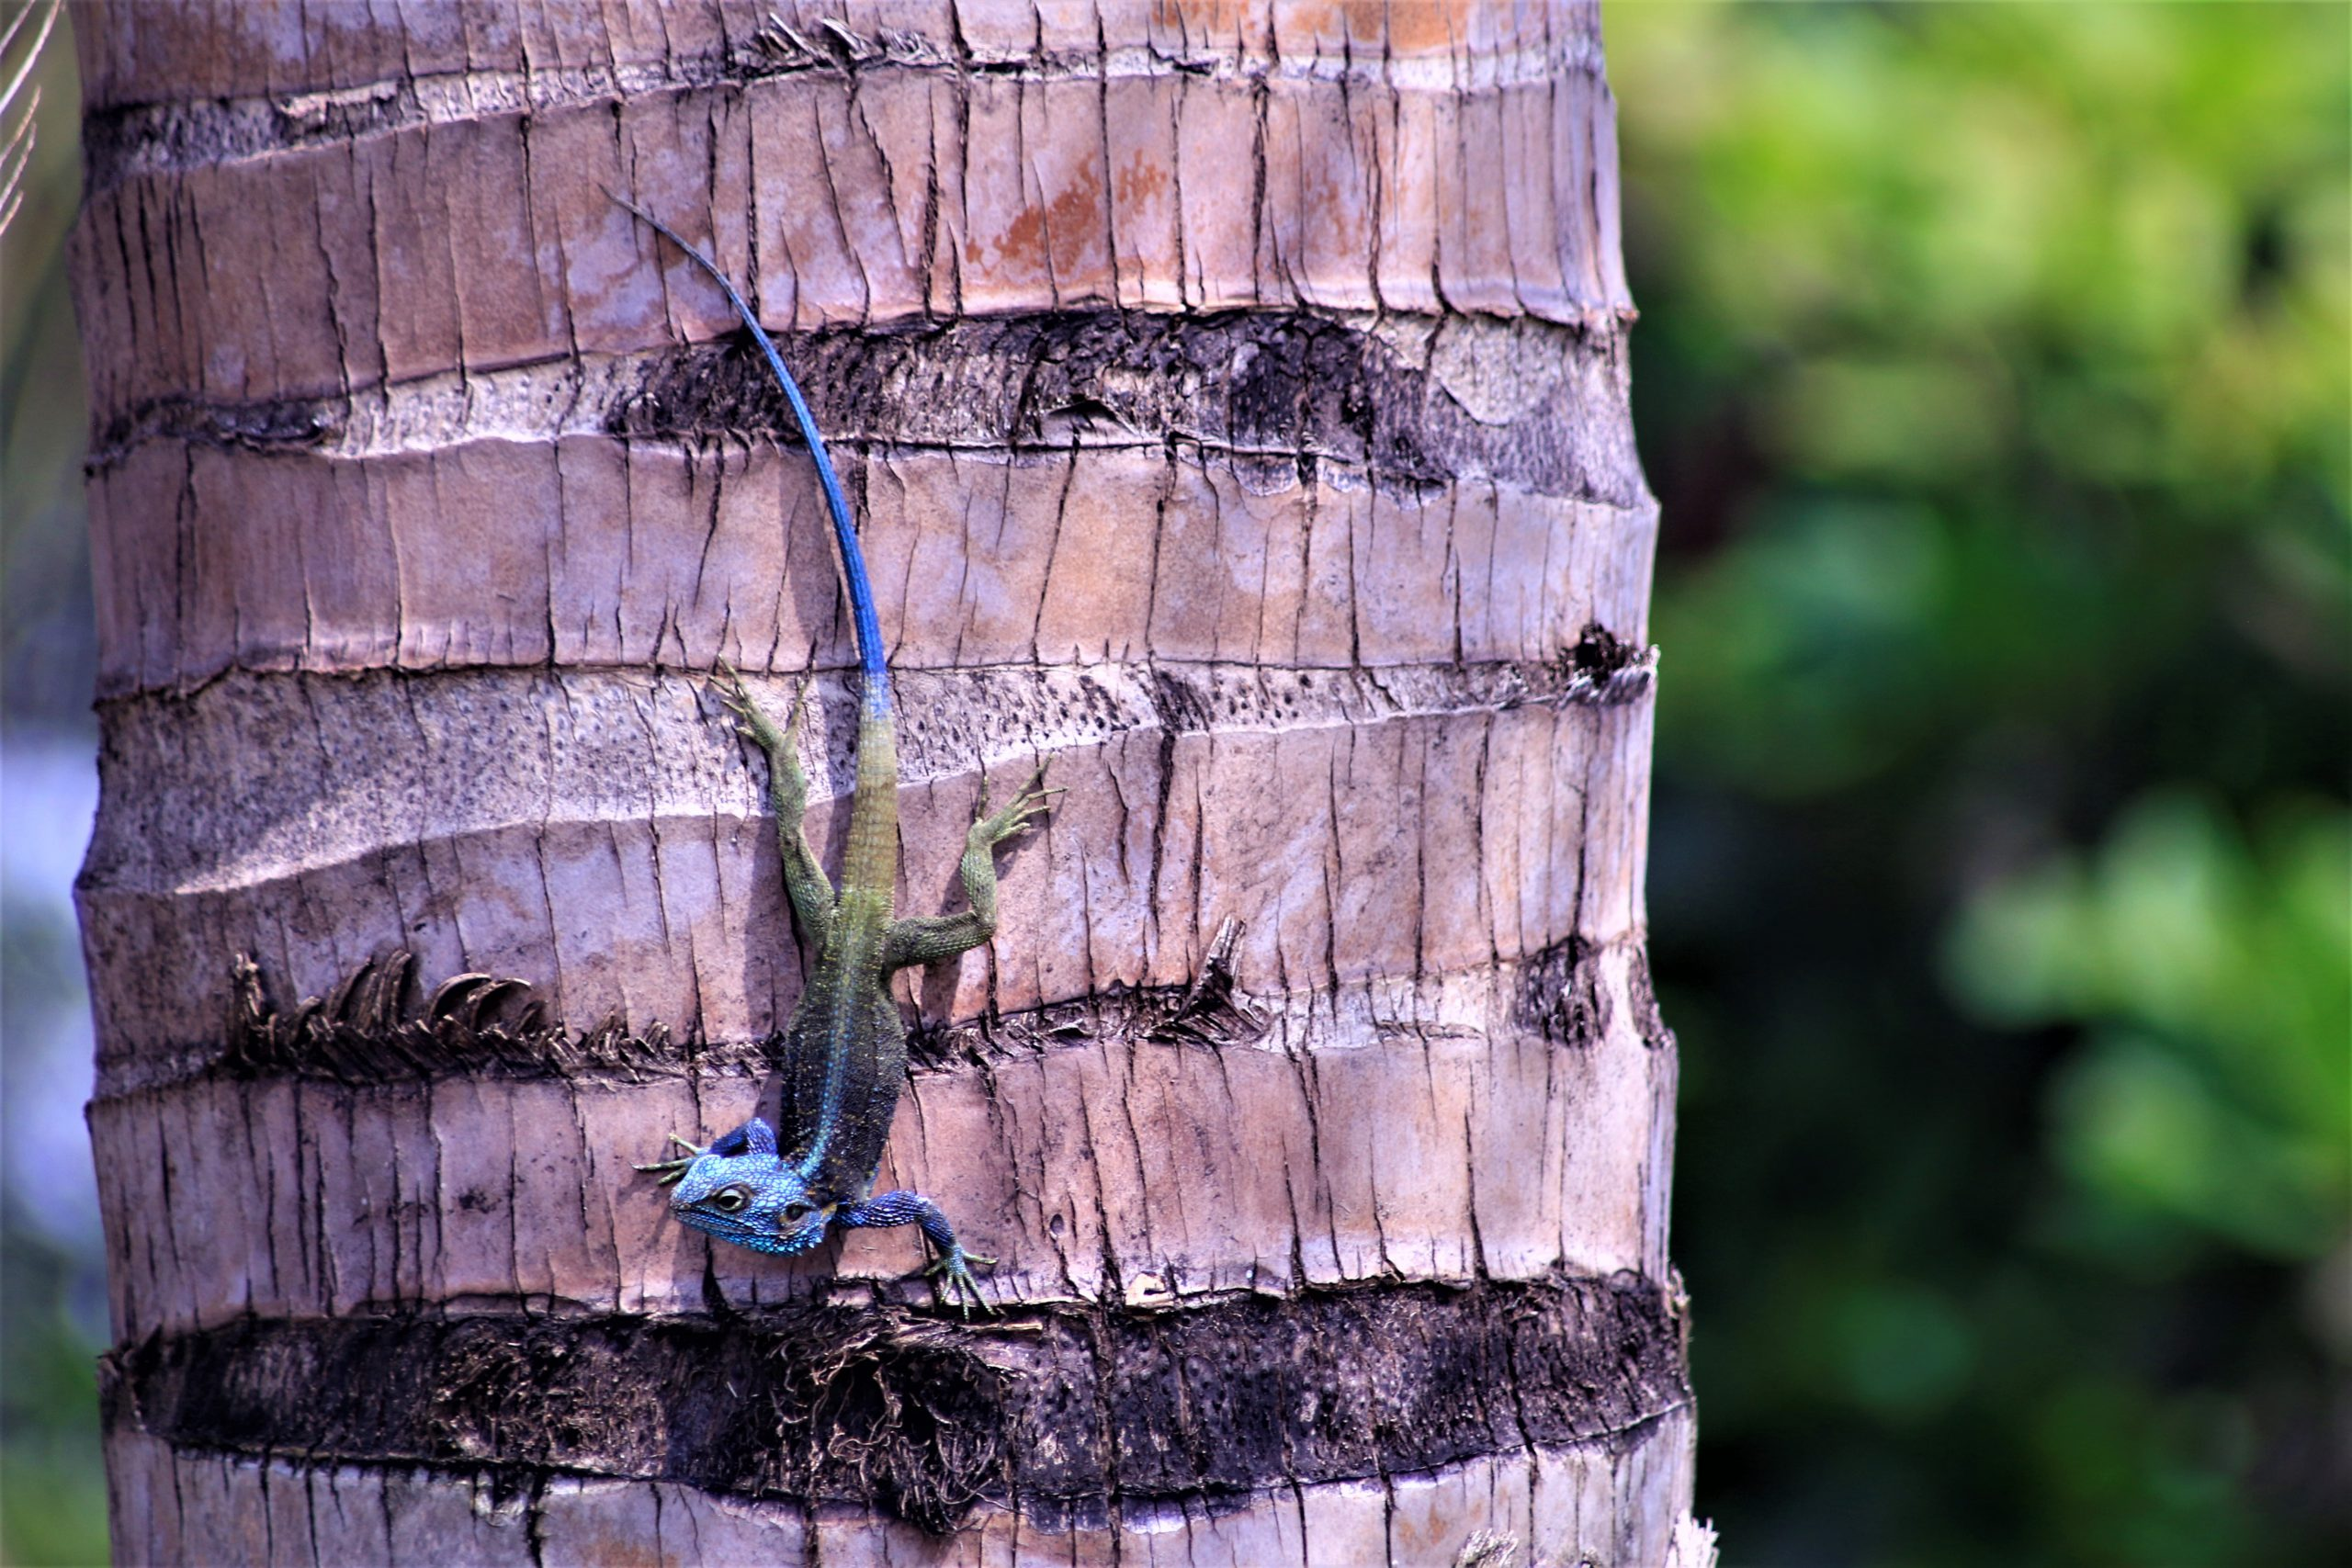 National parks are a home to several rare species such as this lizard taken in Queen Elizabeth National Park in Uganda. Photo by Fredrick Mugira